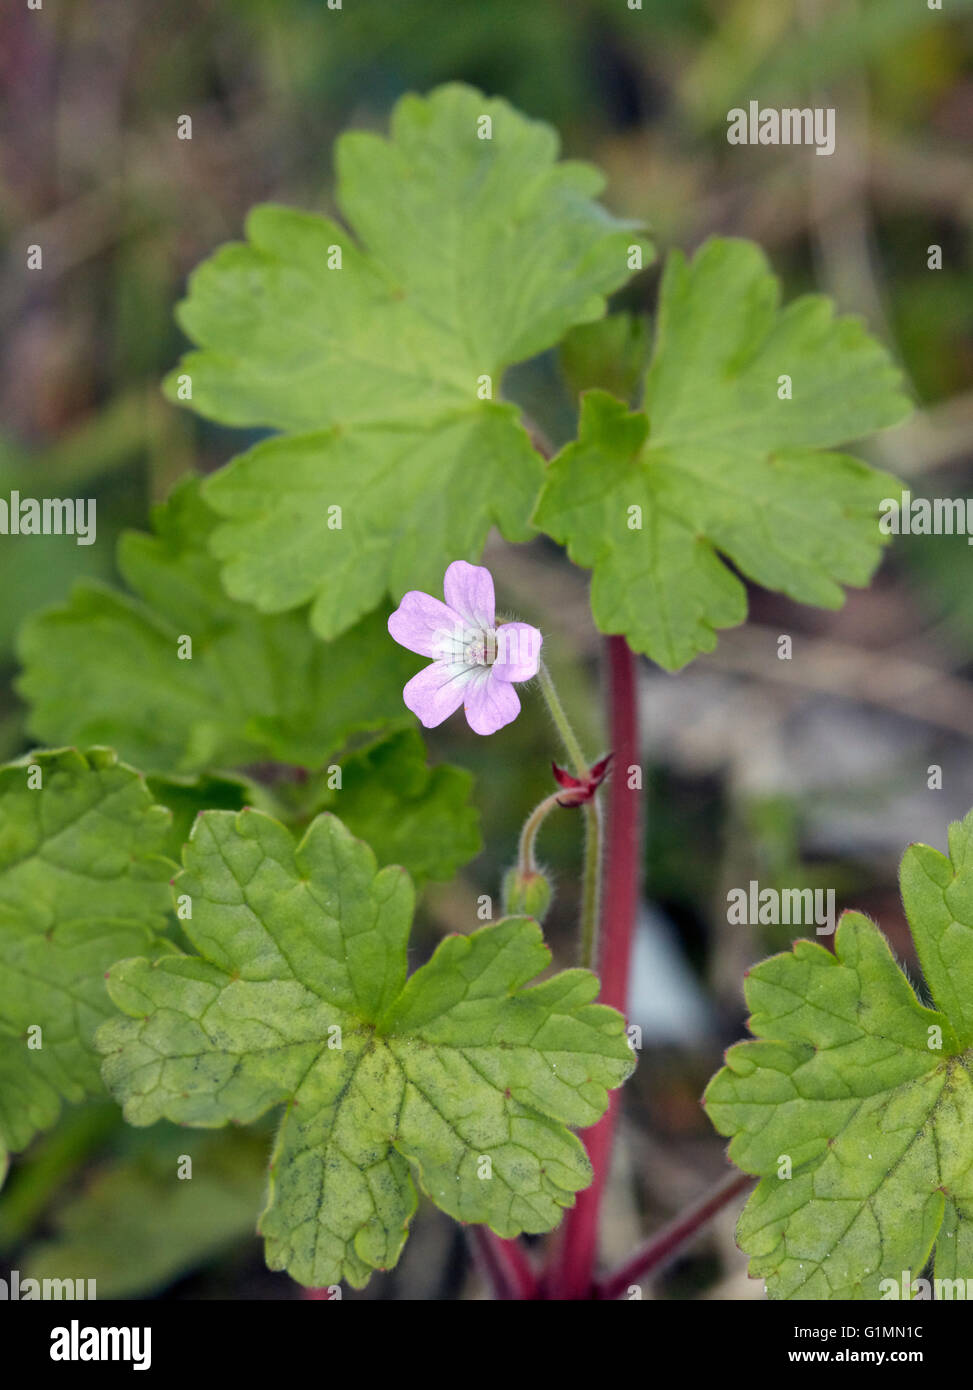 Round-leaved Crane's-bill. Hurst Meadows, West Molesey, Surrey, England. - Stock Image